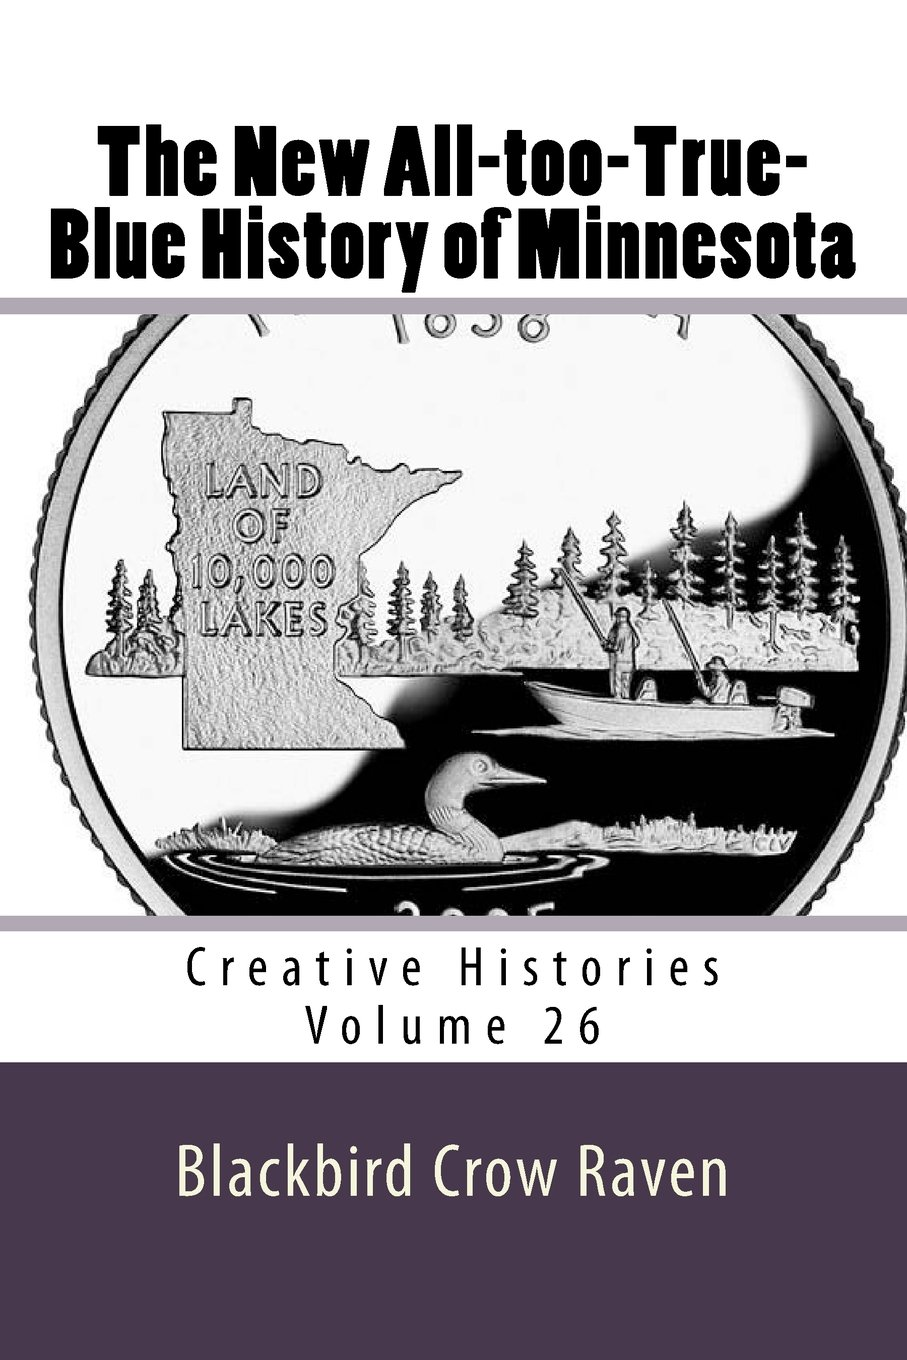 Download The New All-too-True-Blue History of Minnesota (New All-too-True Blue Histories) (Volume 26) ebook